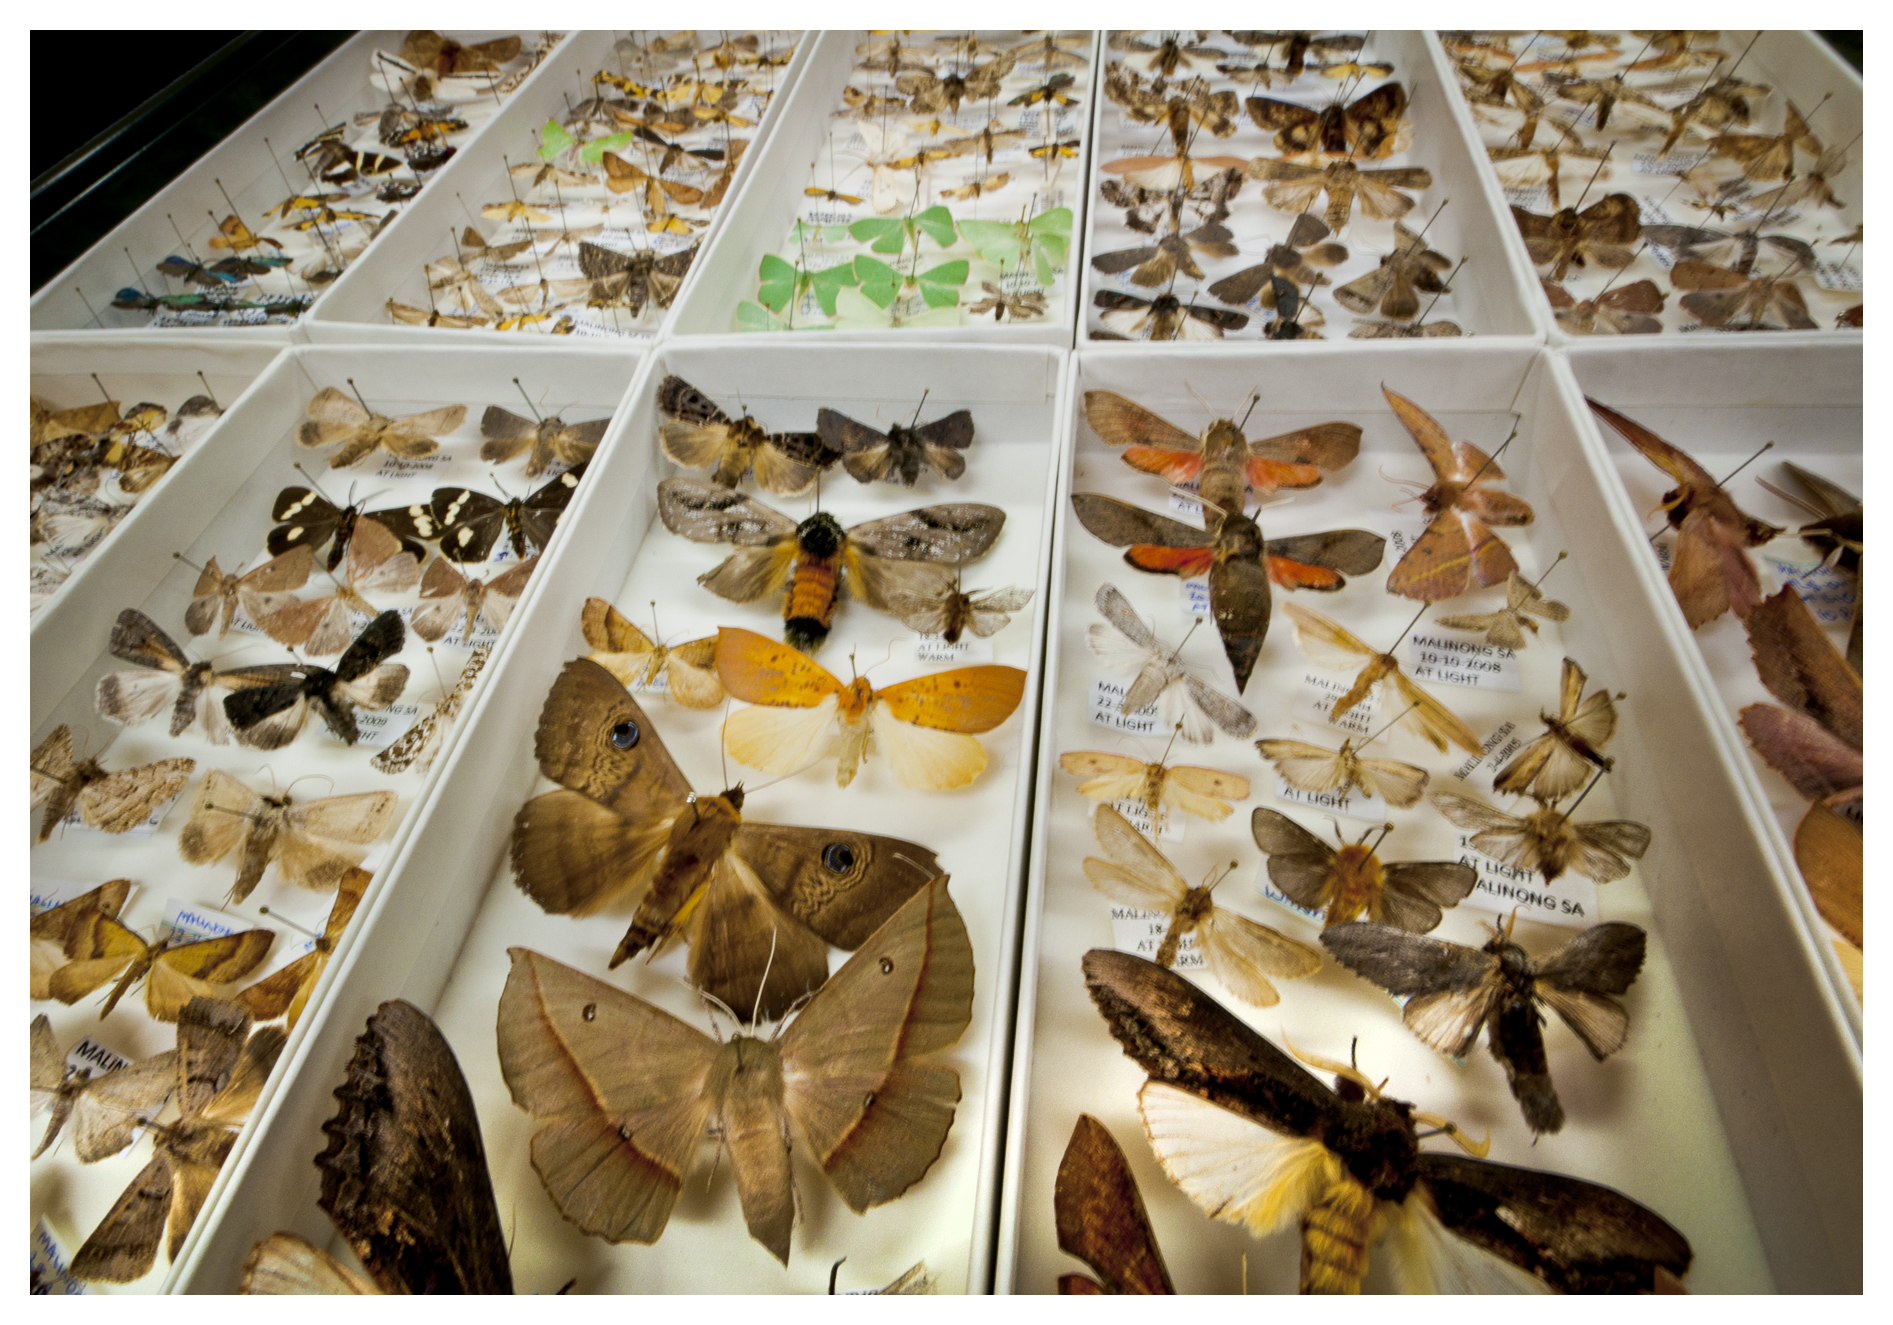 Moth specimens in a display case.